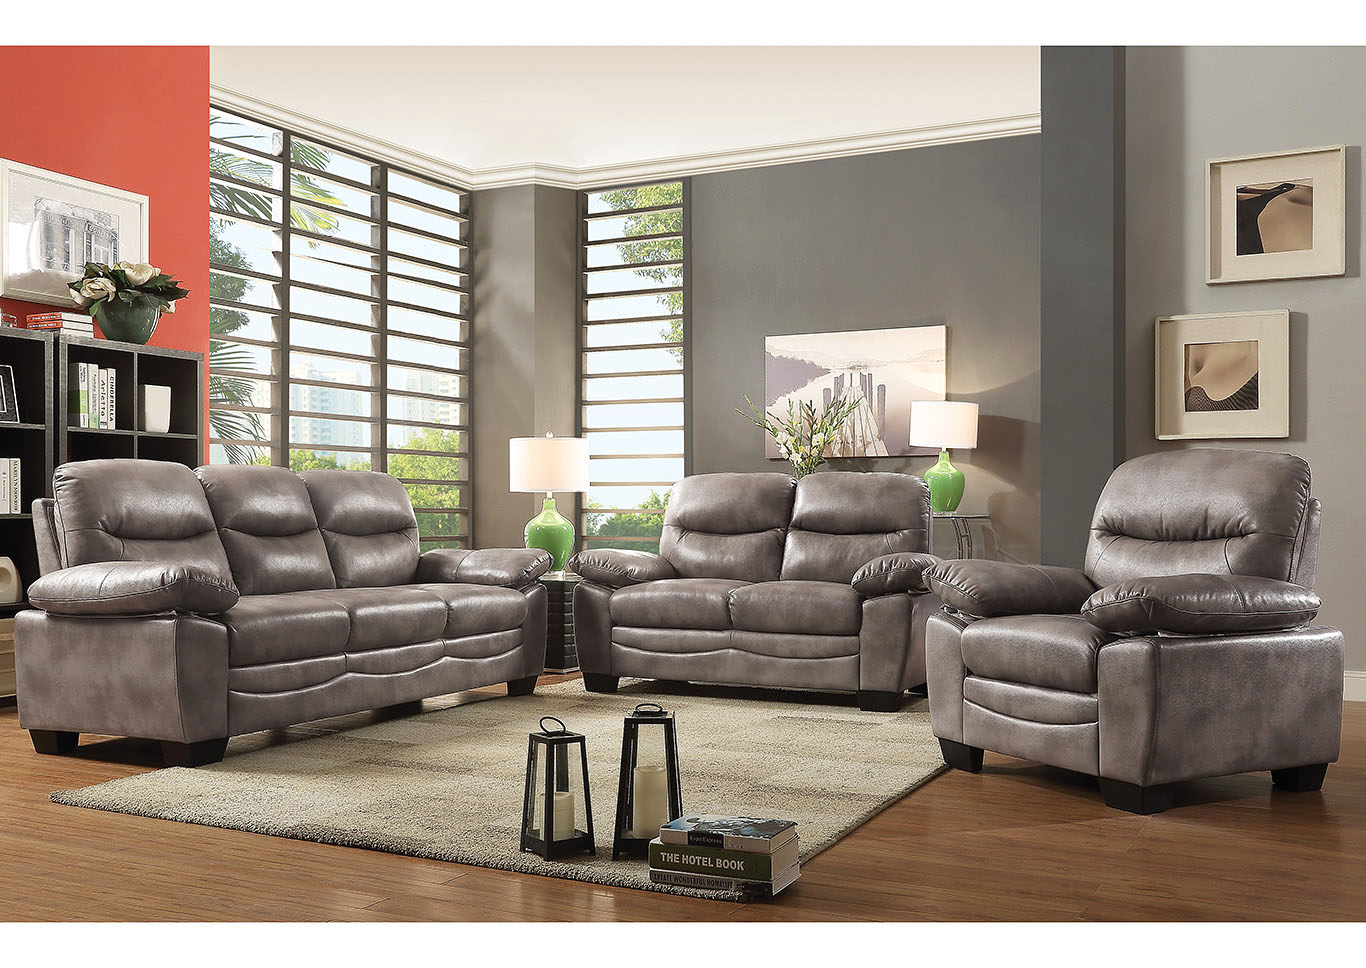 Home Furnishings Depot - NY Torcon Gray Faux Leather Sofa ...